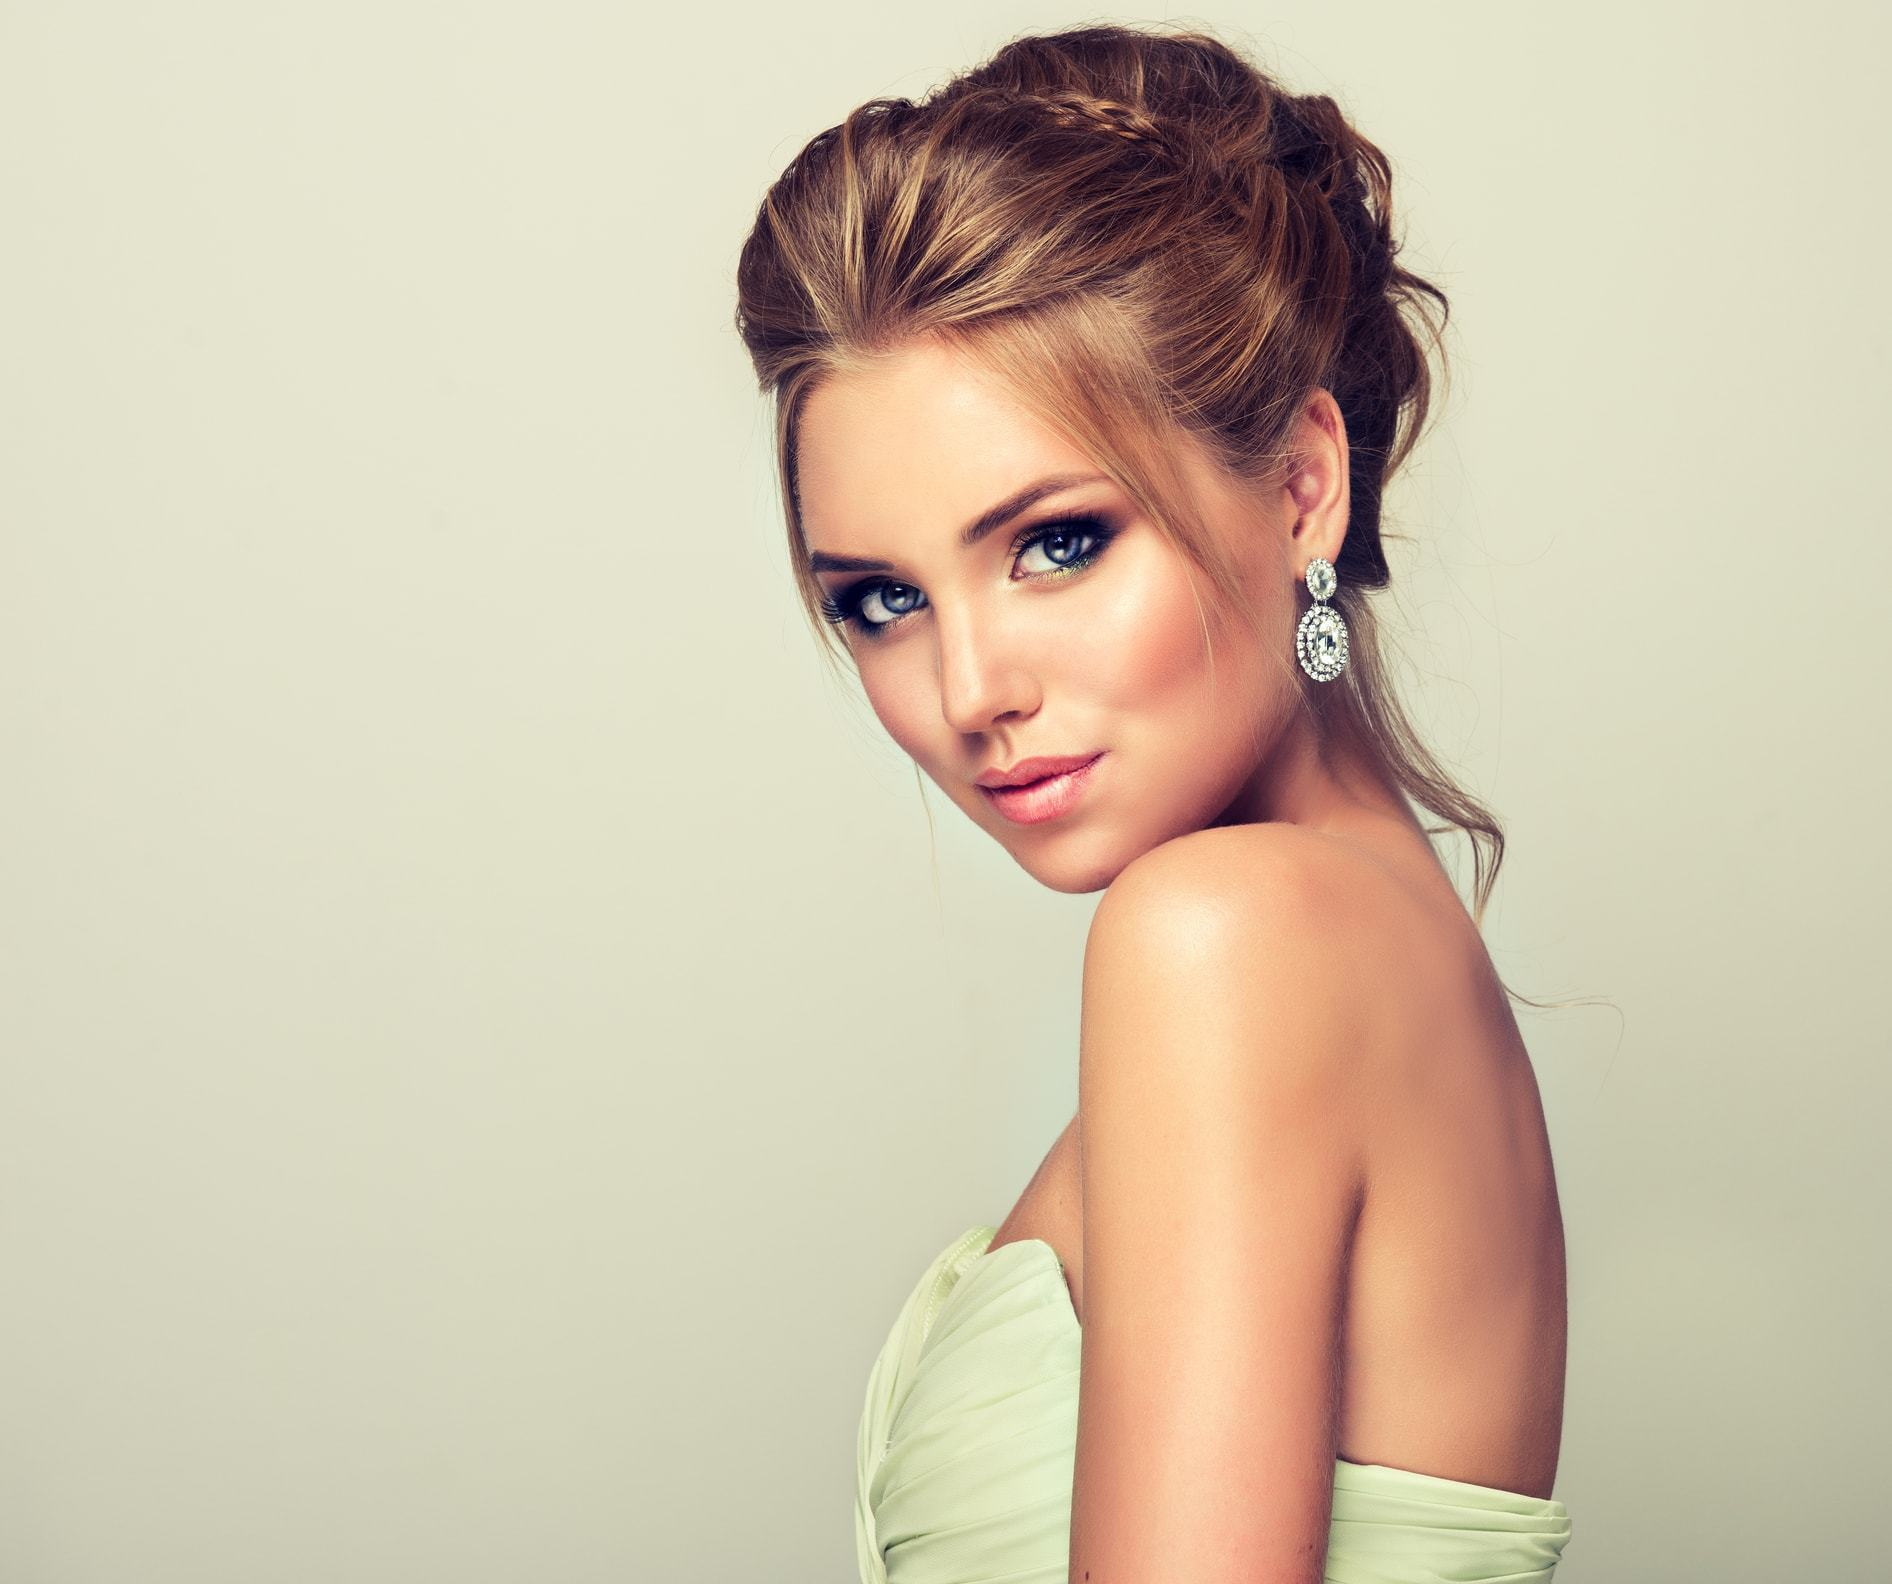 20 evening hairstyles you've got to try out